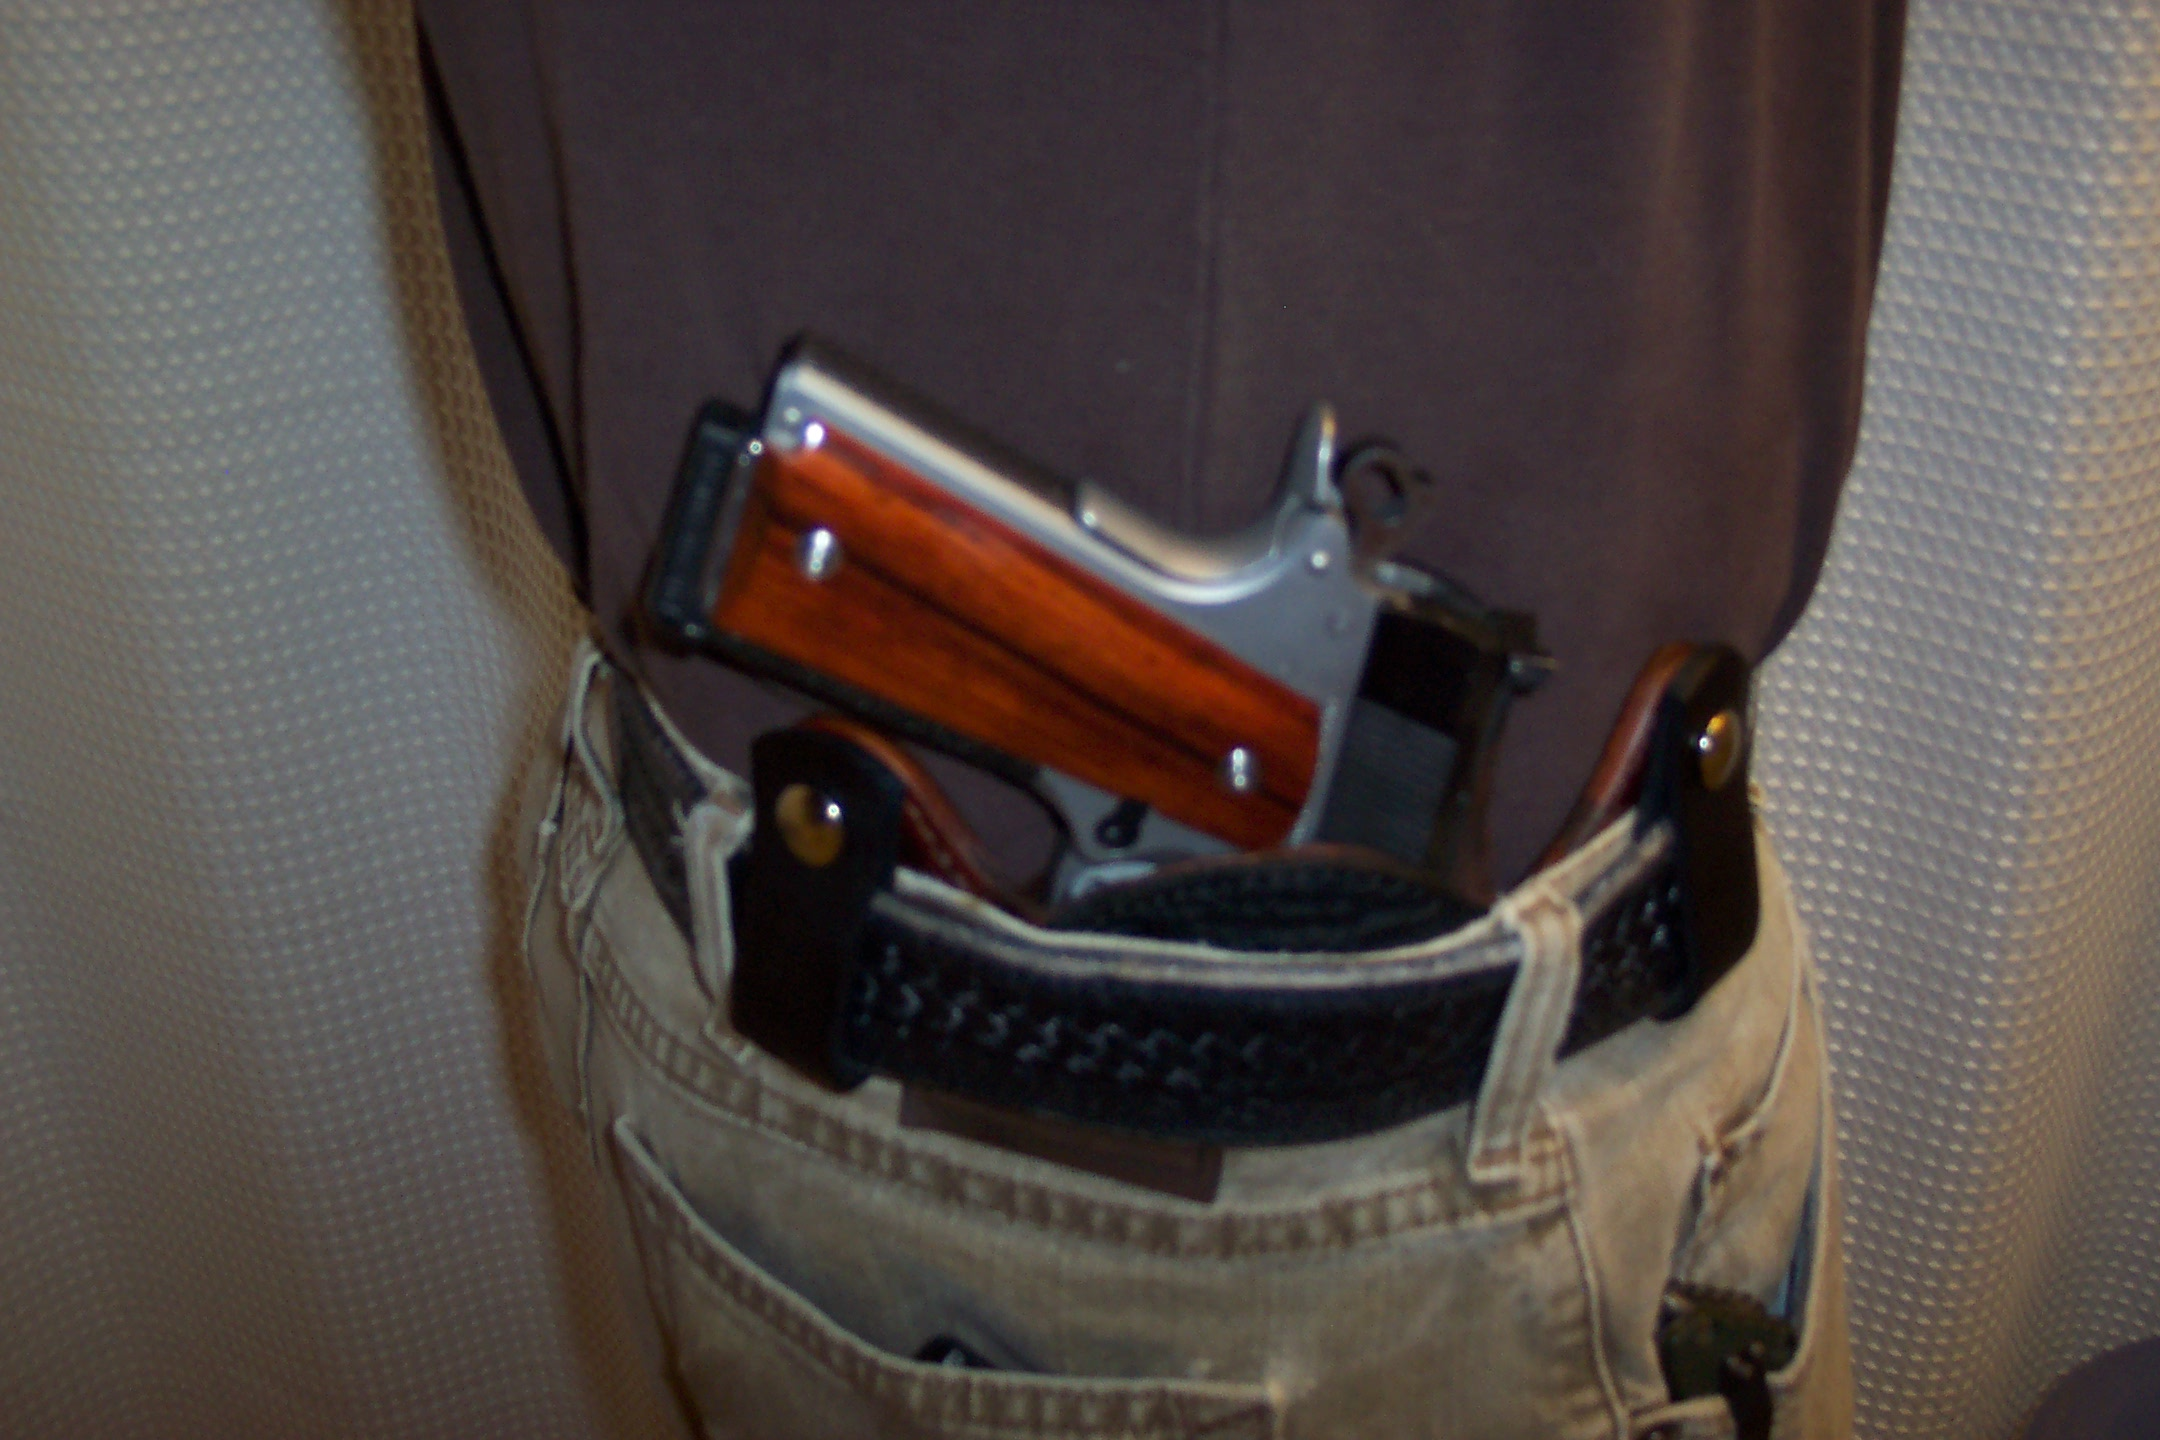 Let's See Your Pic's - How You Carry Concealed.-shawn-iwb-tle-worn.jpg